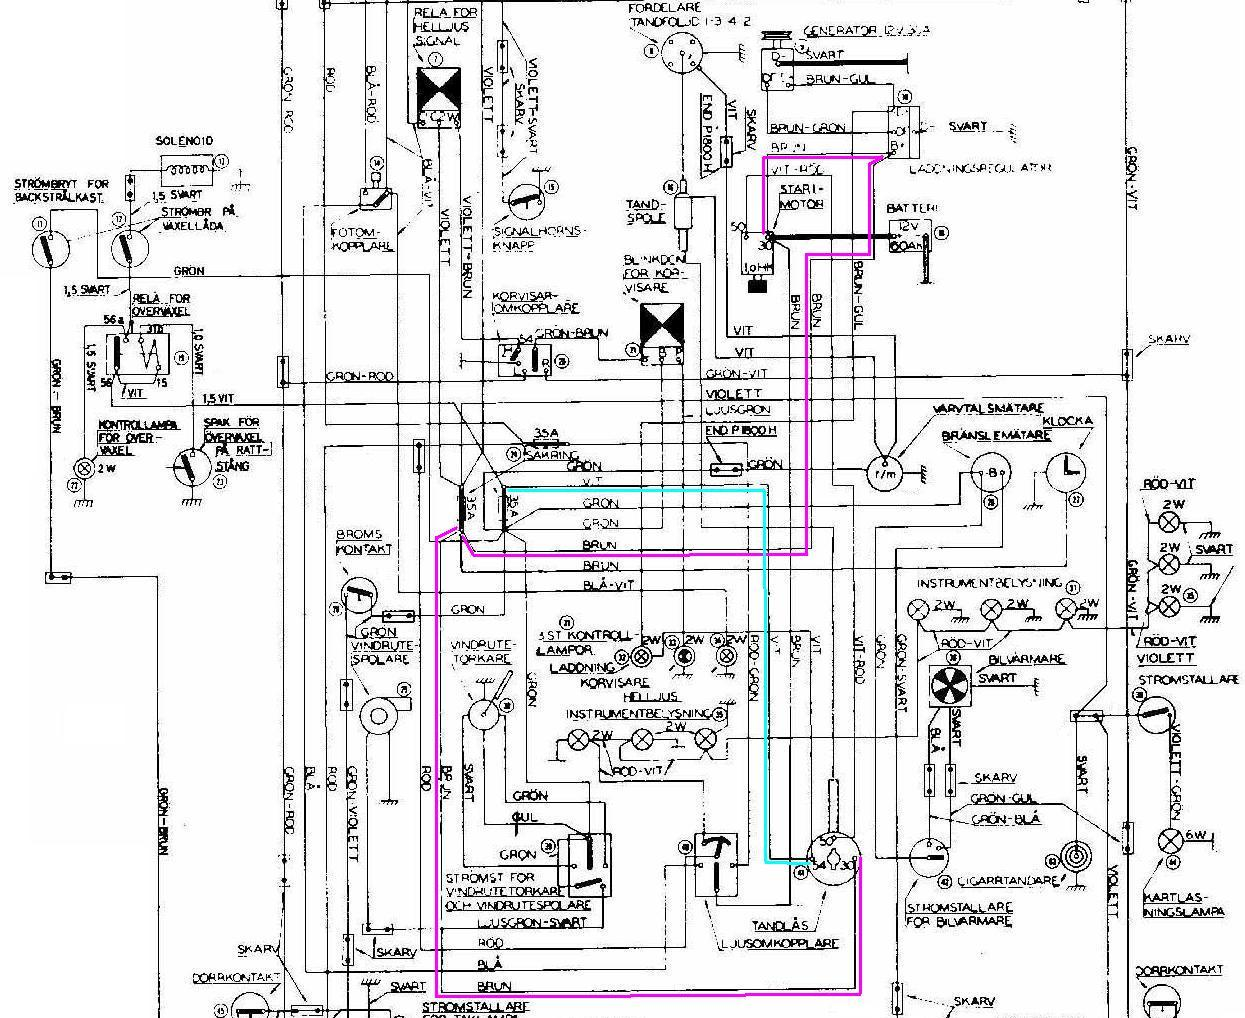 Wiring Diagram Volvo Amazon Opinions About 1991 940 Engine Schematics Diagrams U2022 Rh Parntesis Co Vw Cabriolet